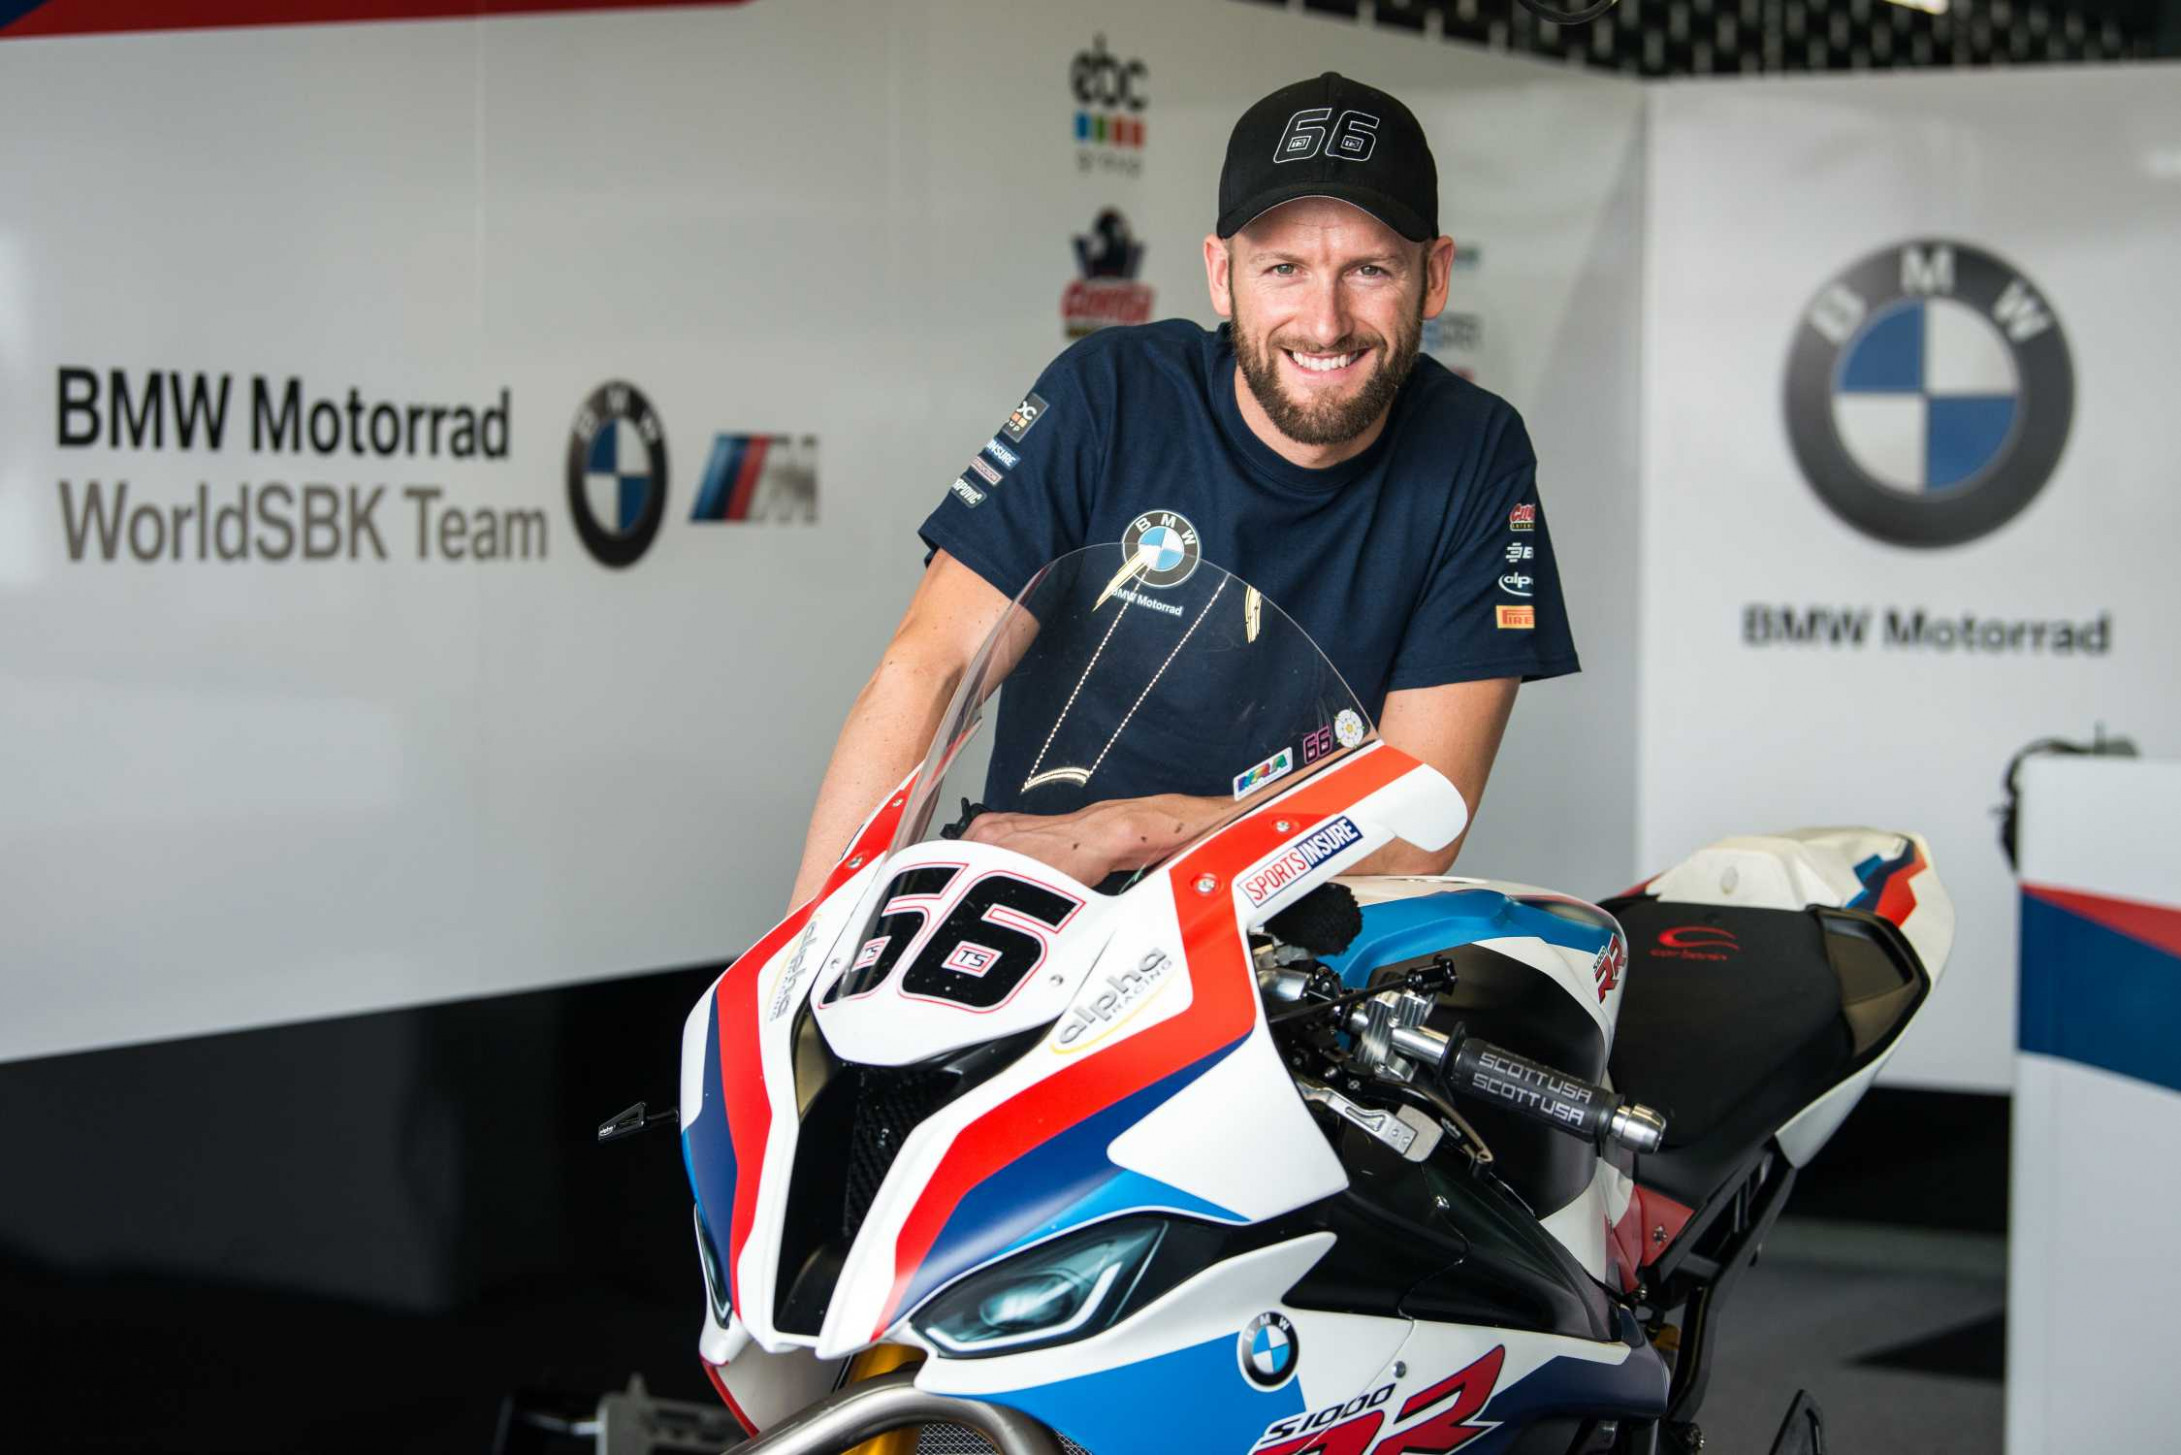 BMW Motorrad WorldSBK Team and Tom Sykes to race together also in ..